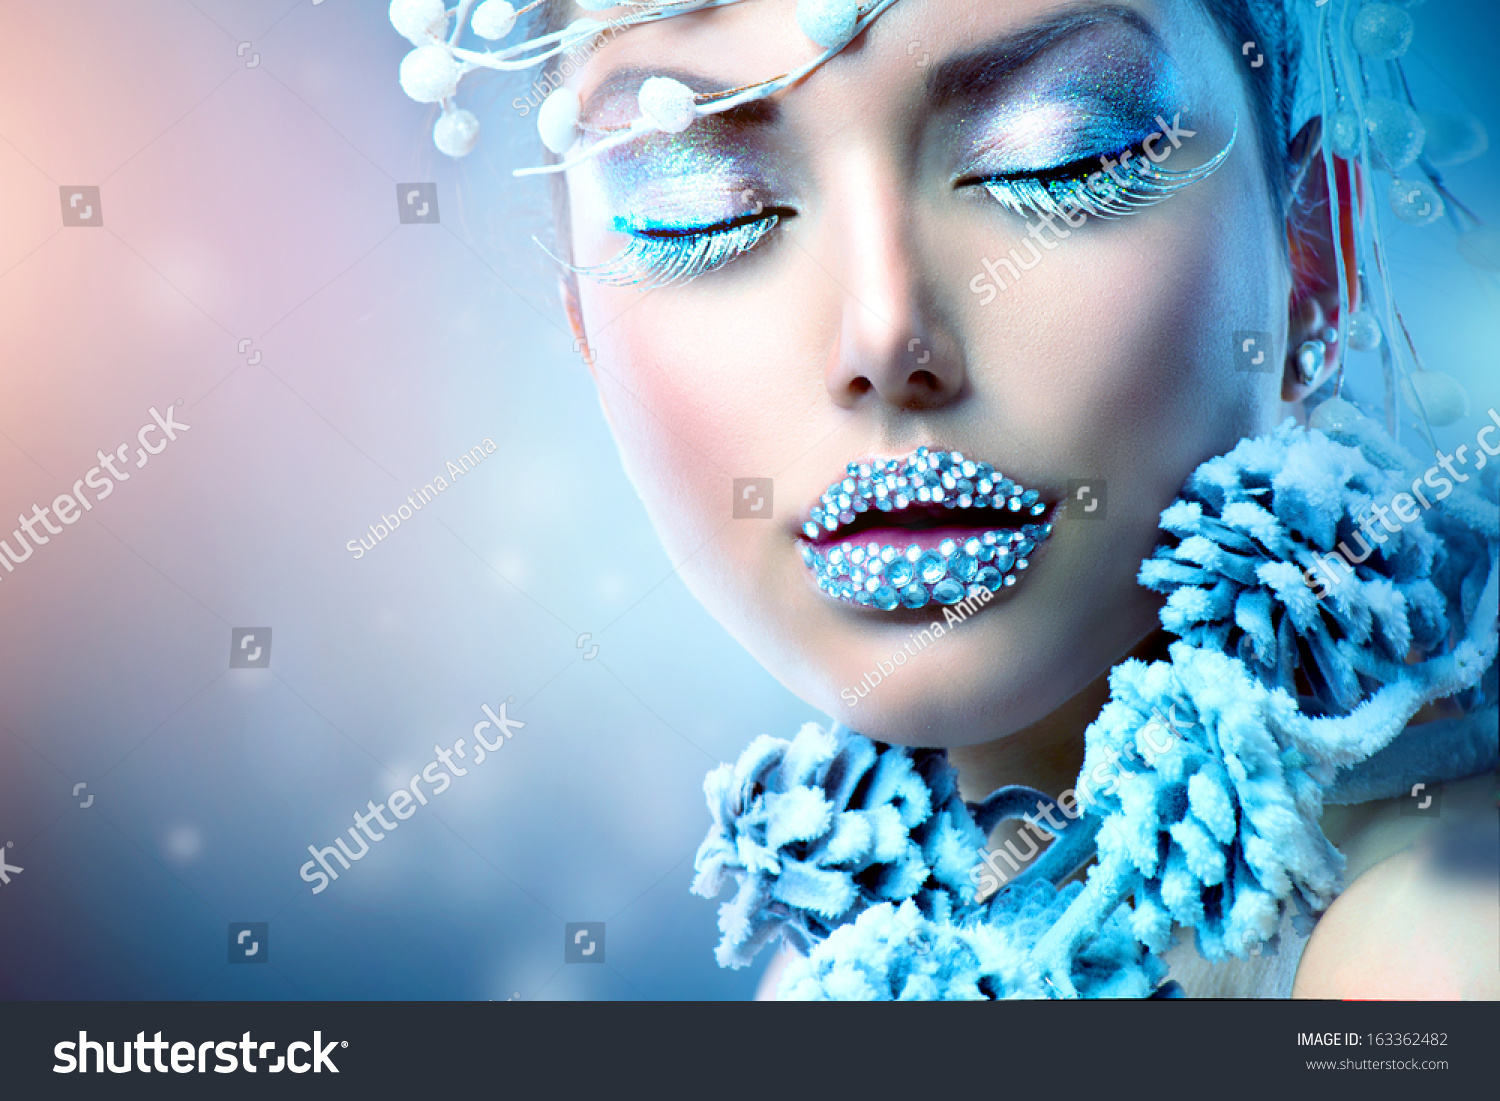 Winter Beauty Woman Christmas Girl Makeup Holiday Make Up Snow Queen High